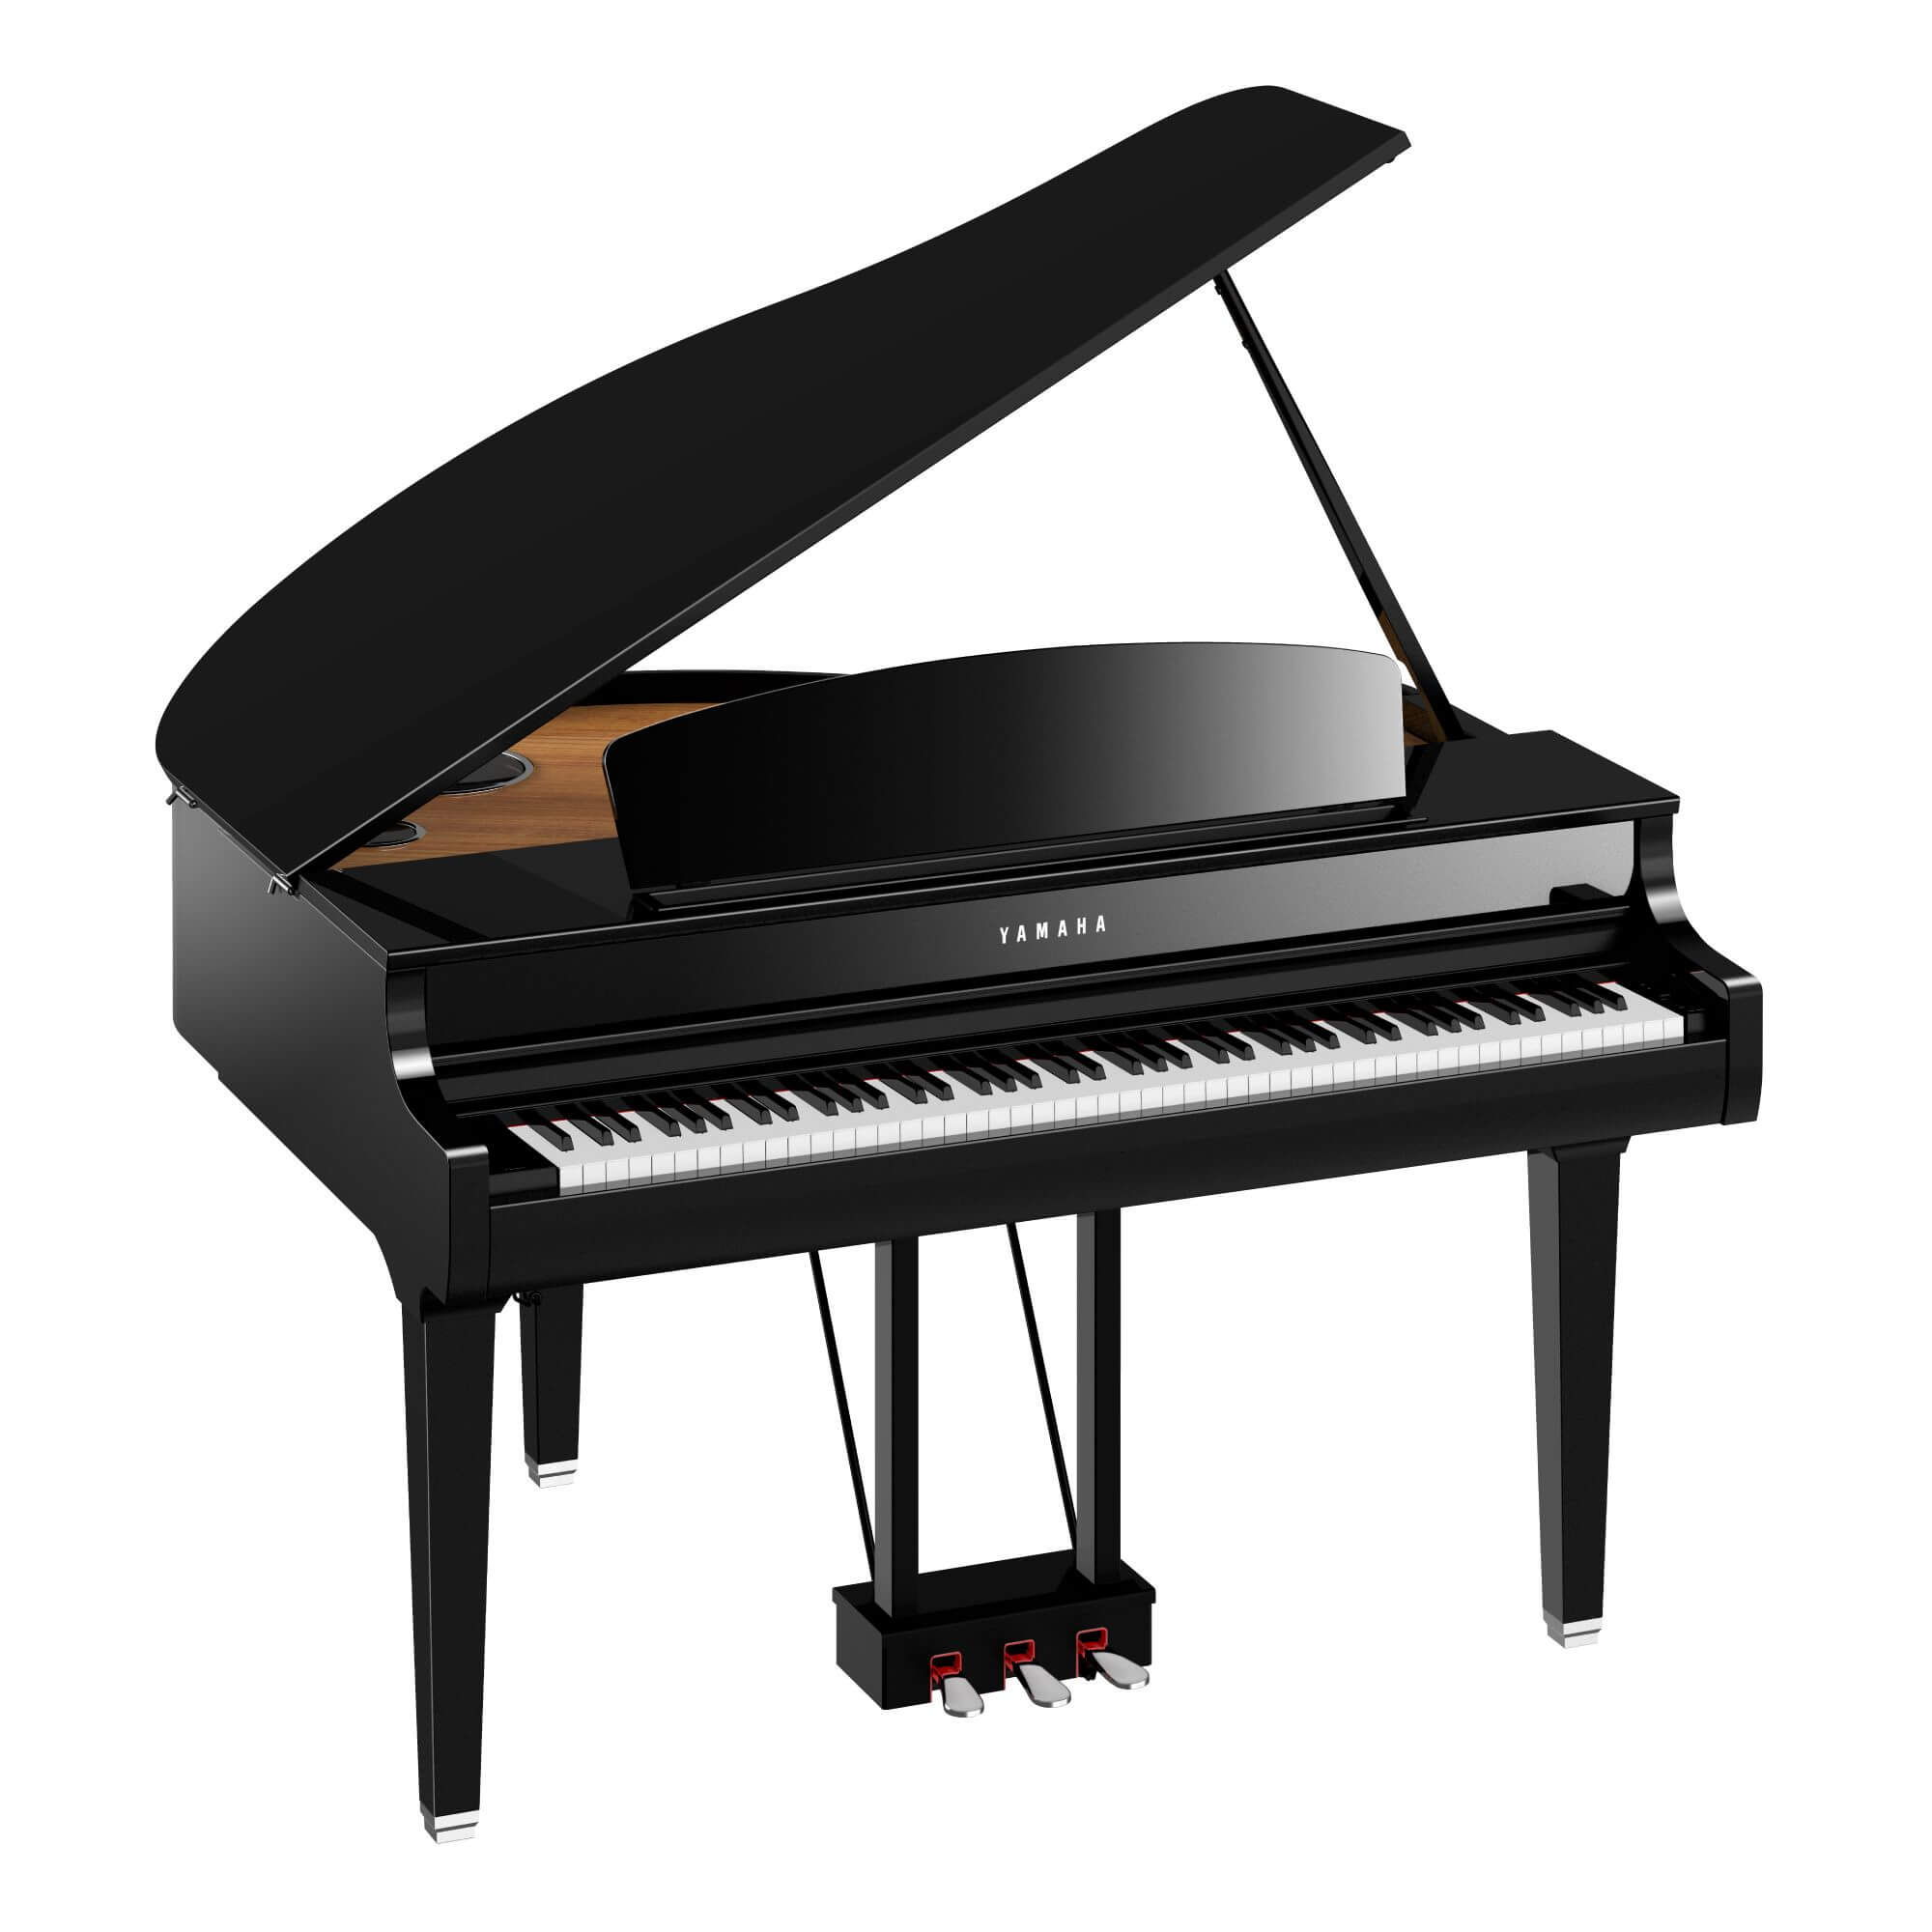 Piano Digital Yamaha CLP-795GP